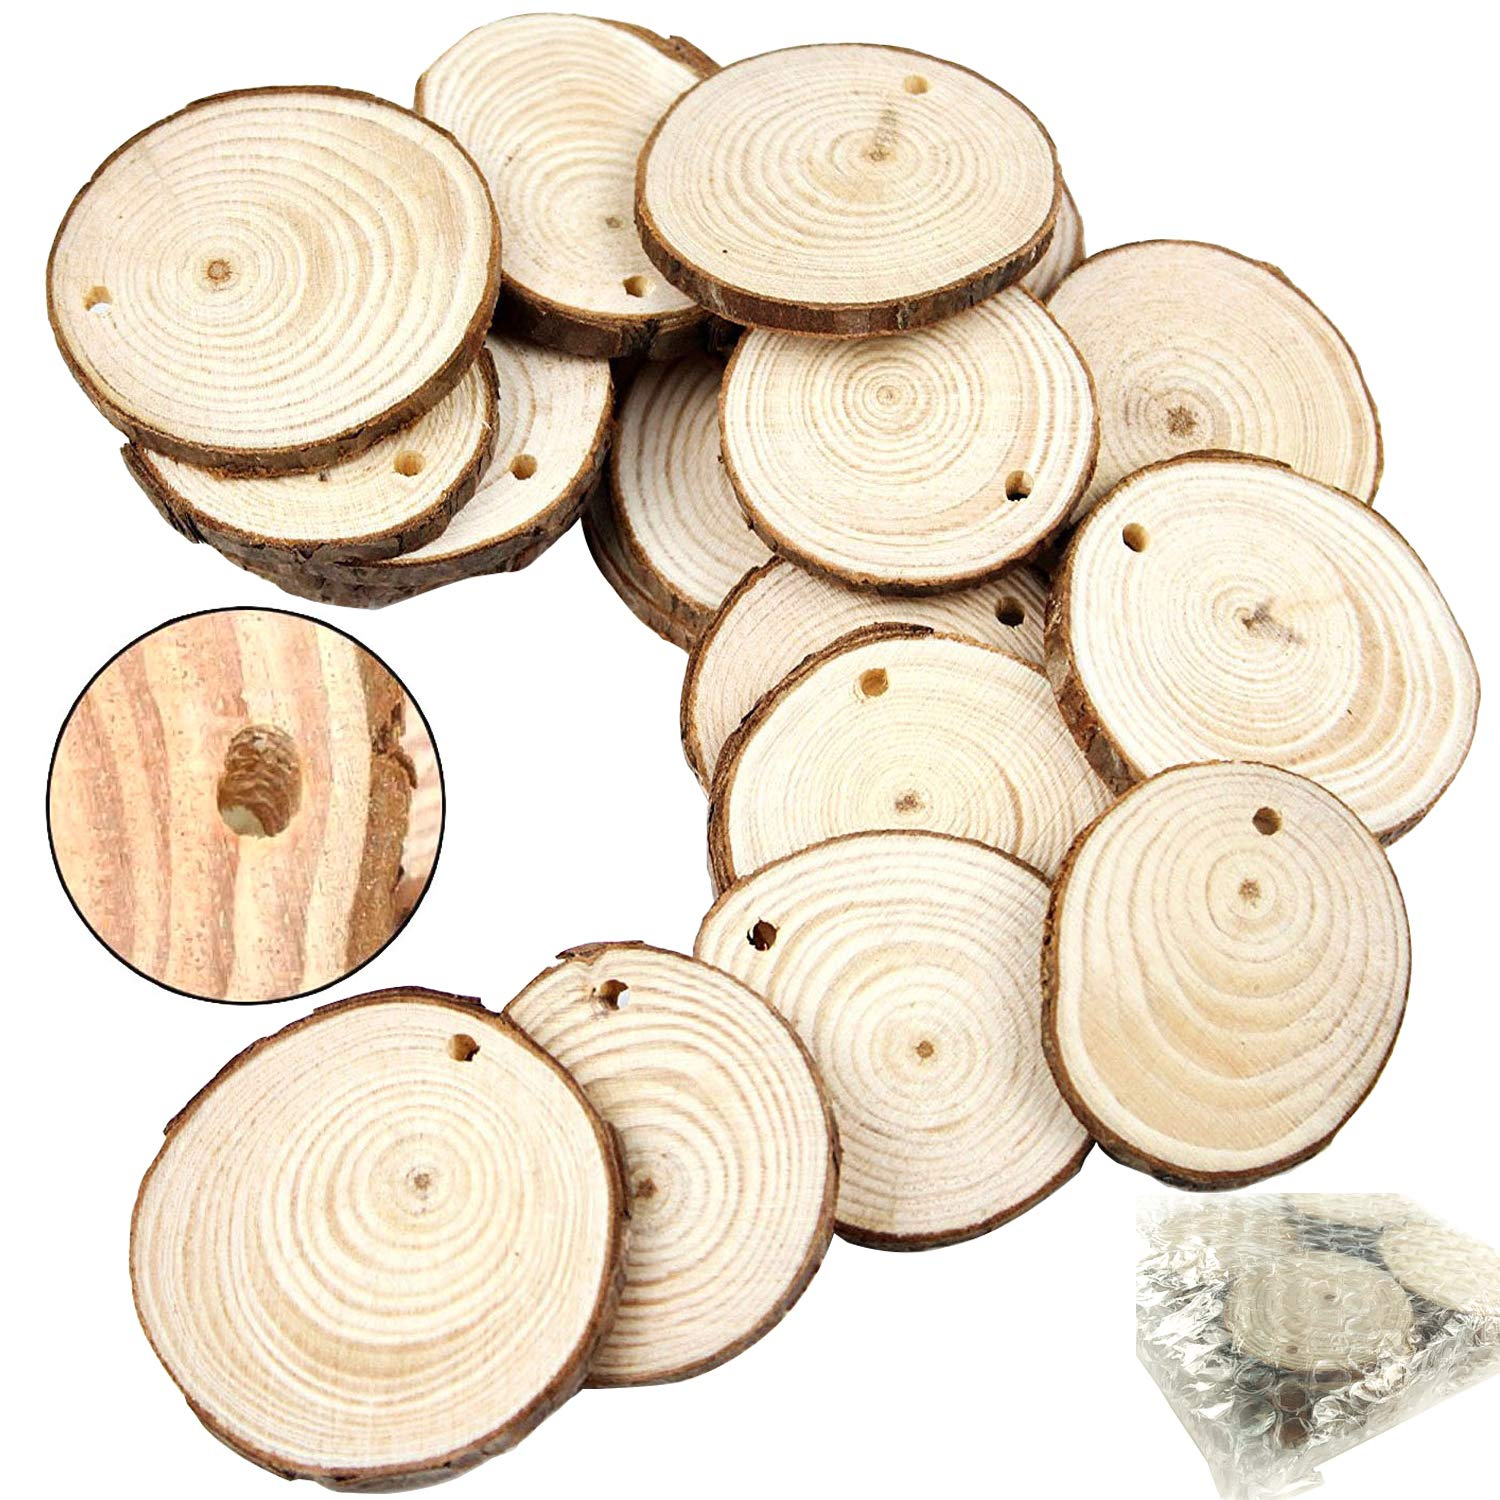 JPSOR 50pcs 1.6-2 Unfinished Predrilled Natural Wood Slices Goodlucky 4336907170